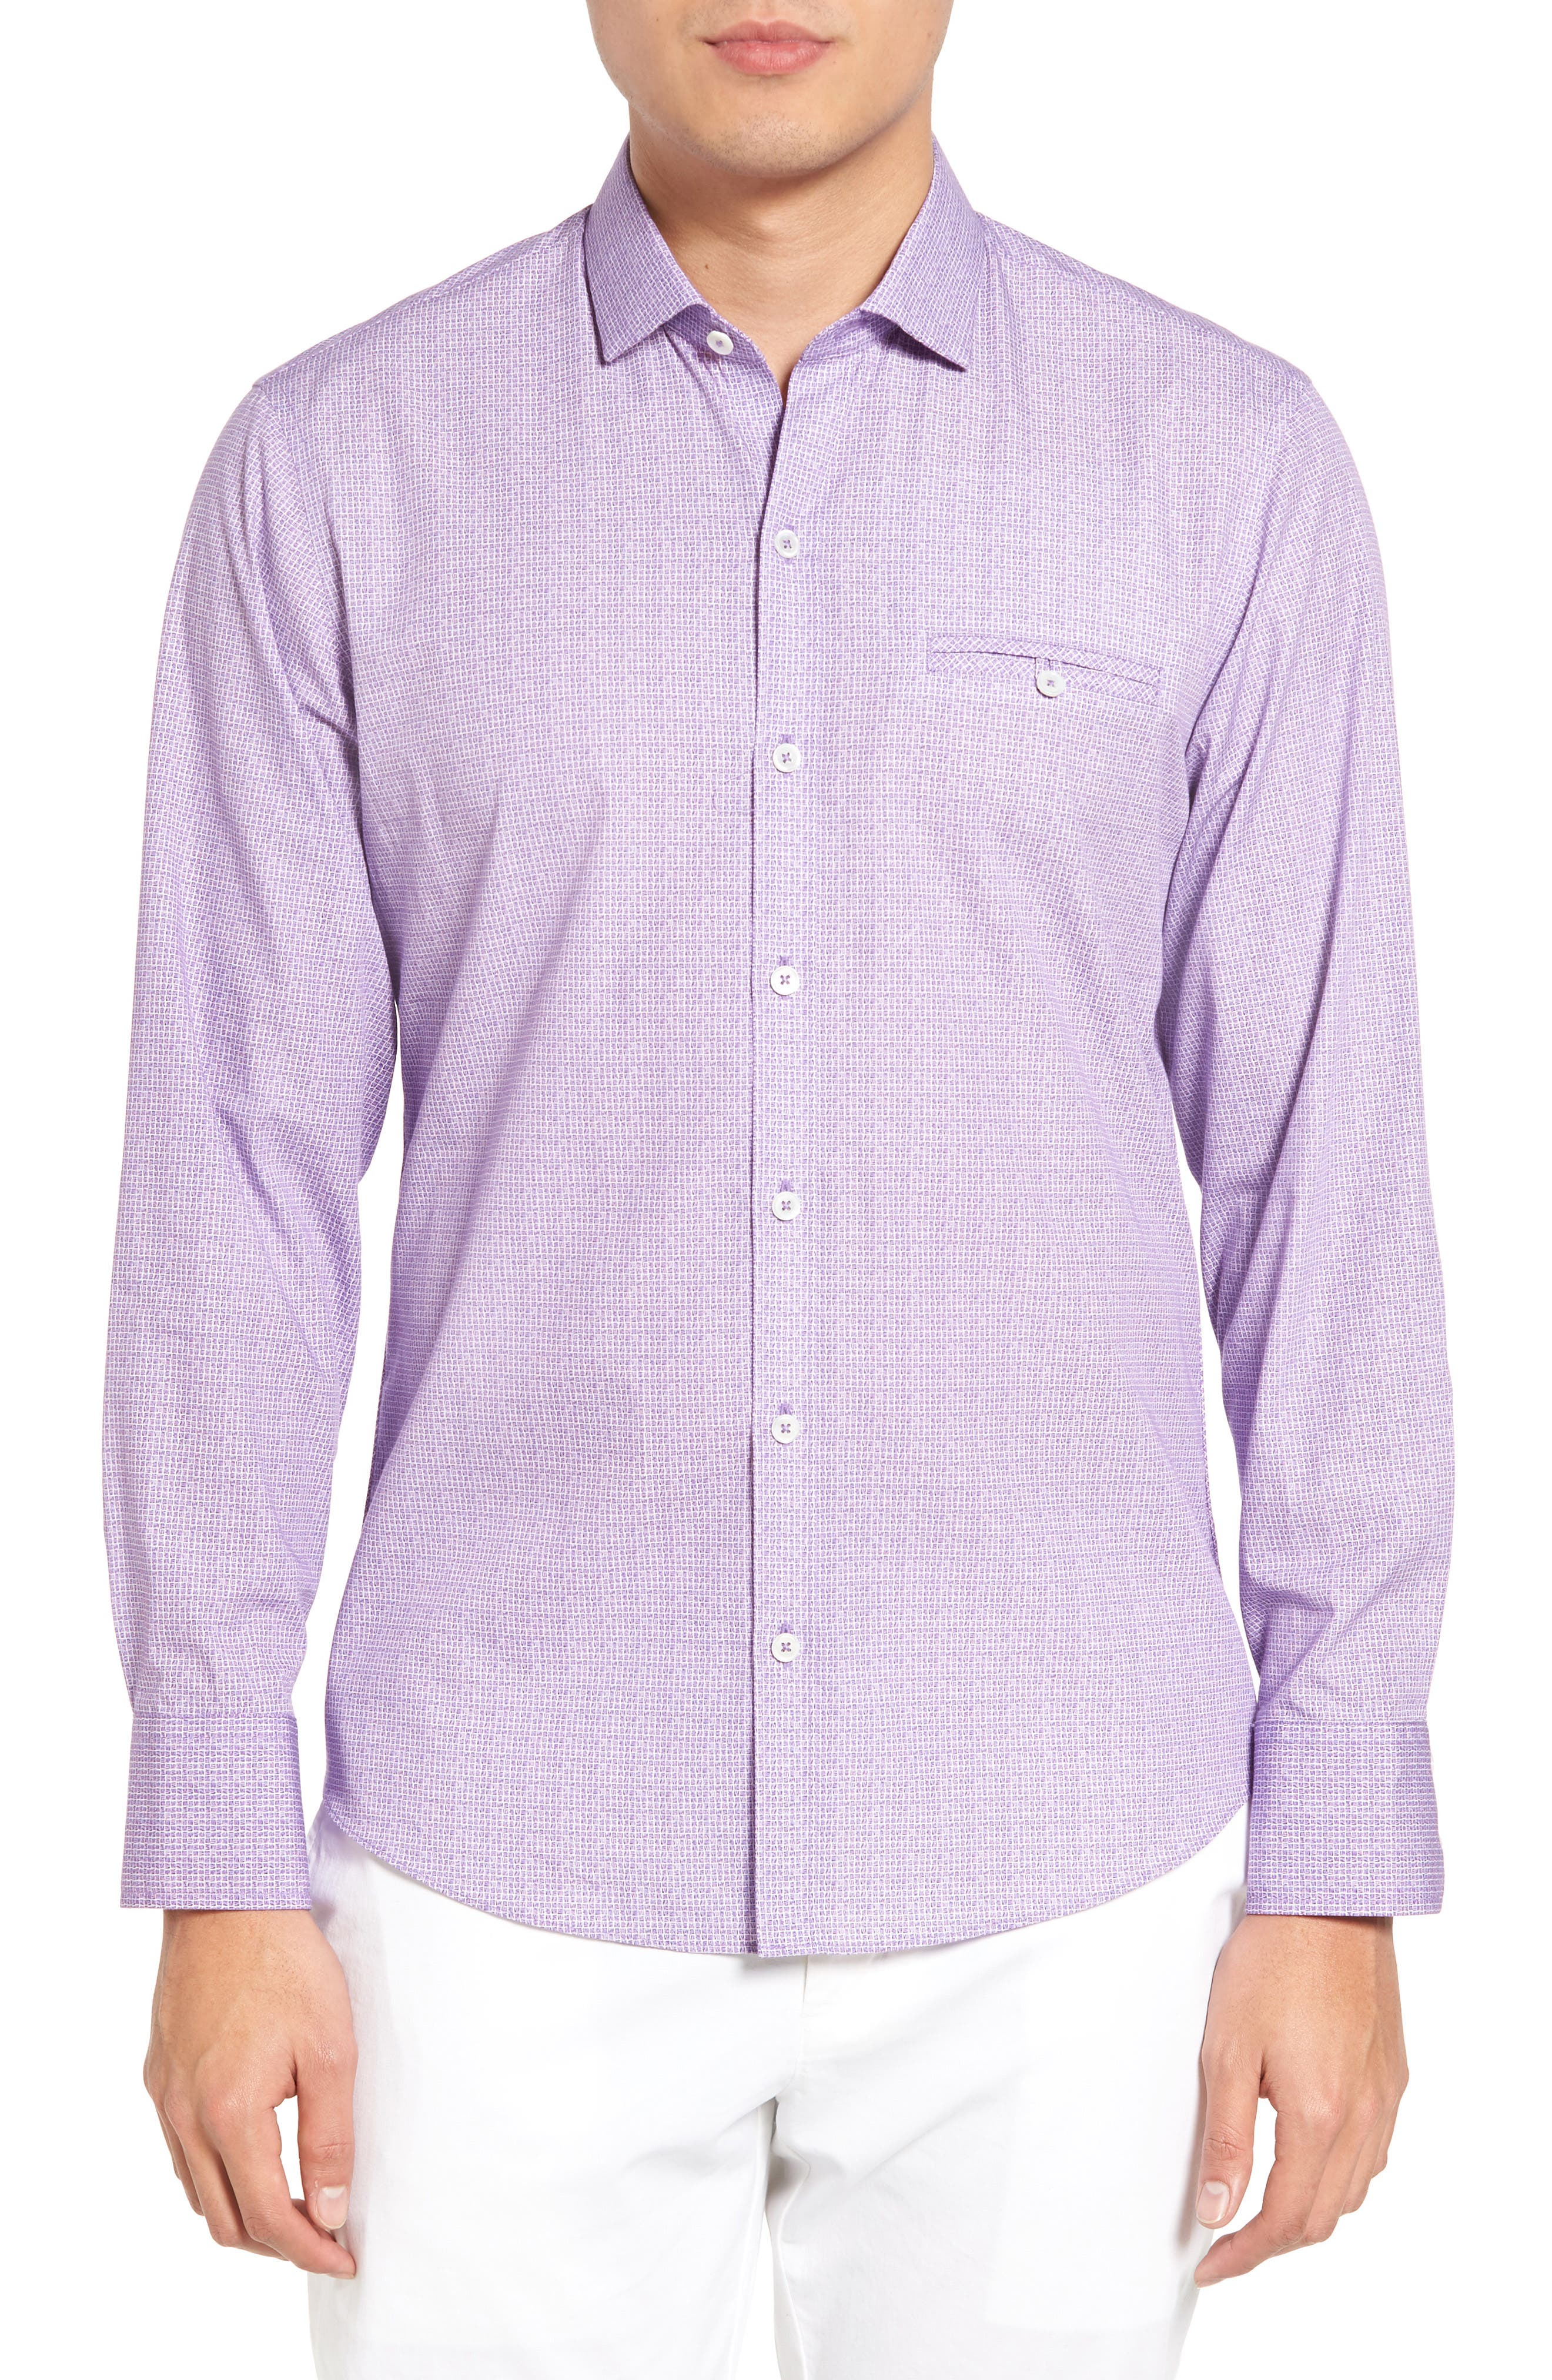 Main Image - Zachary Prell McDesmond Trim Fit Print Sport Shirt